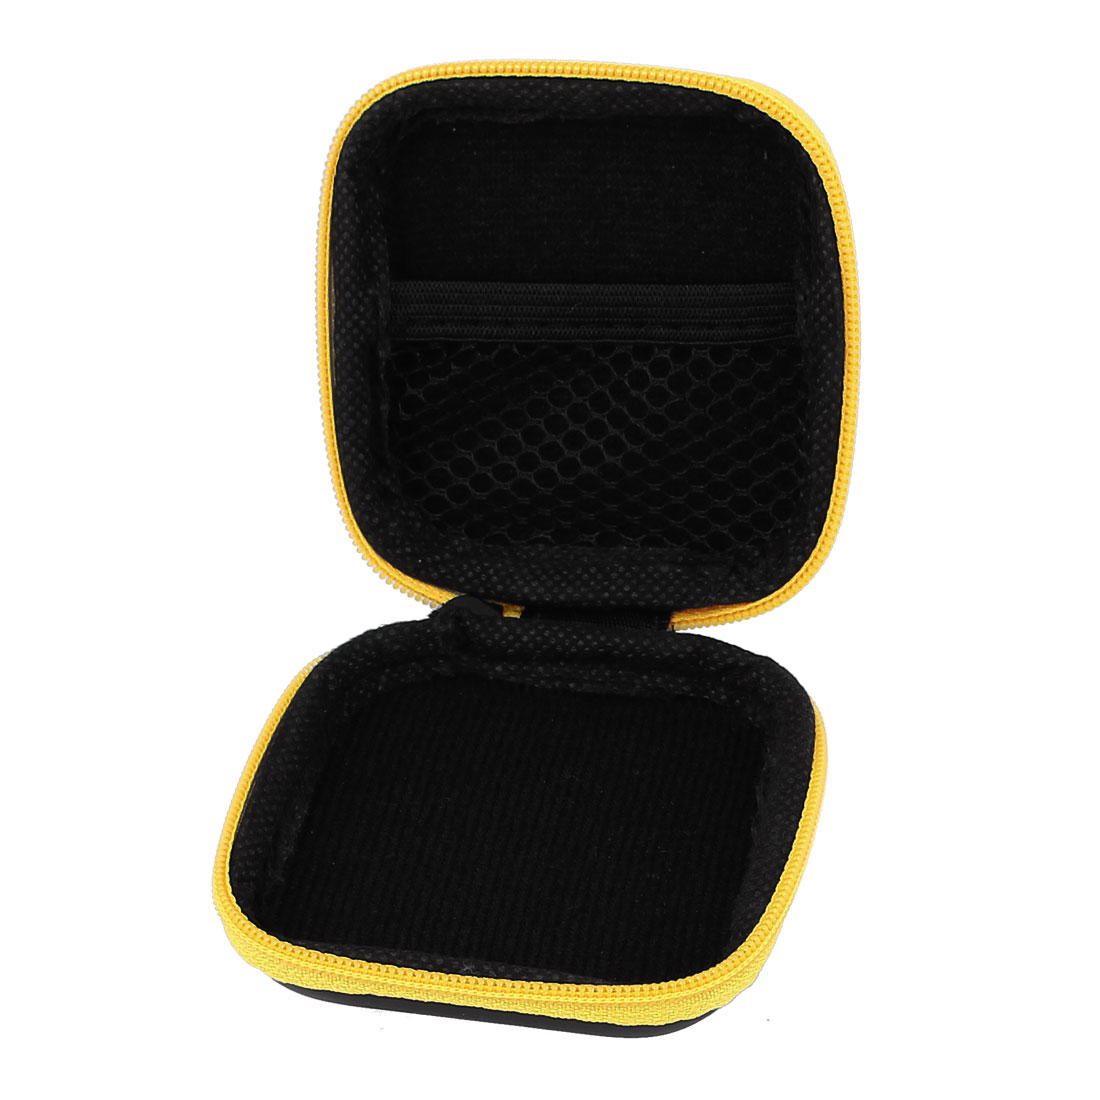 Earphone Cellphone Headphone Headset Earbuds Square Carrying Hold Case Pouch Storage Bag Box Pocket Yellow